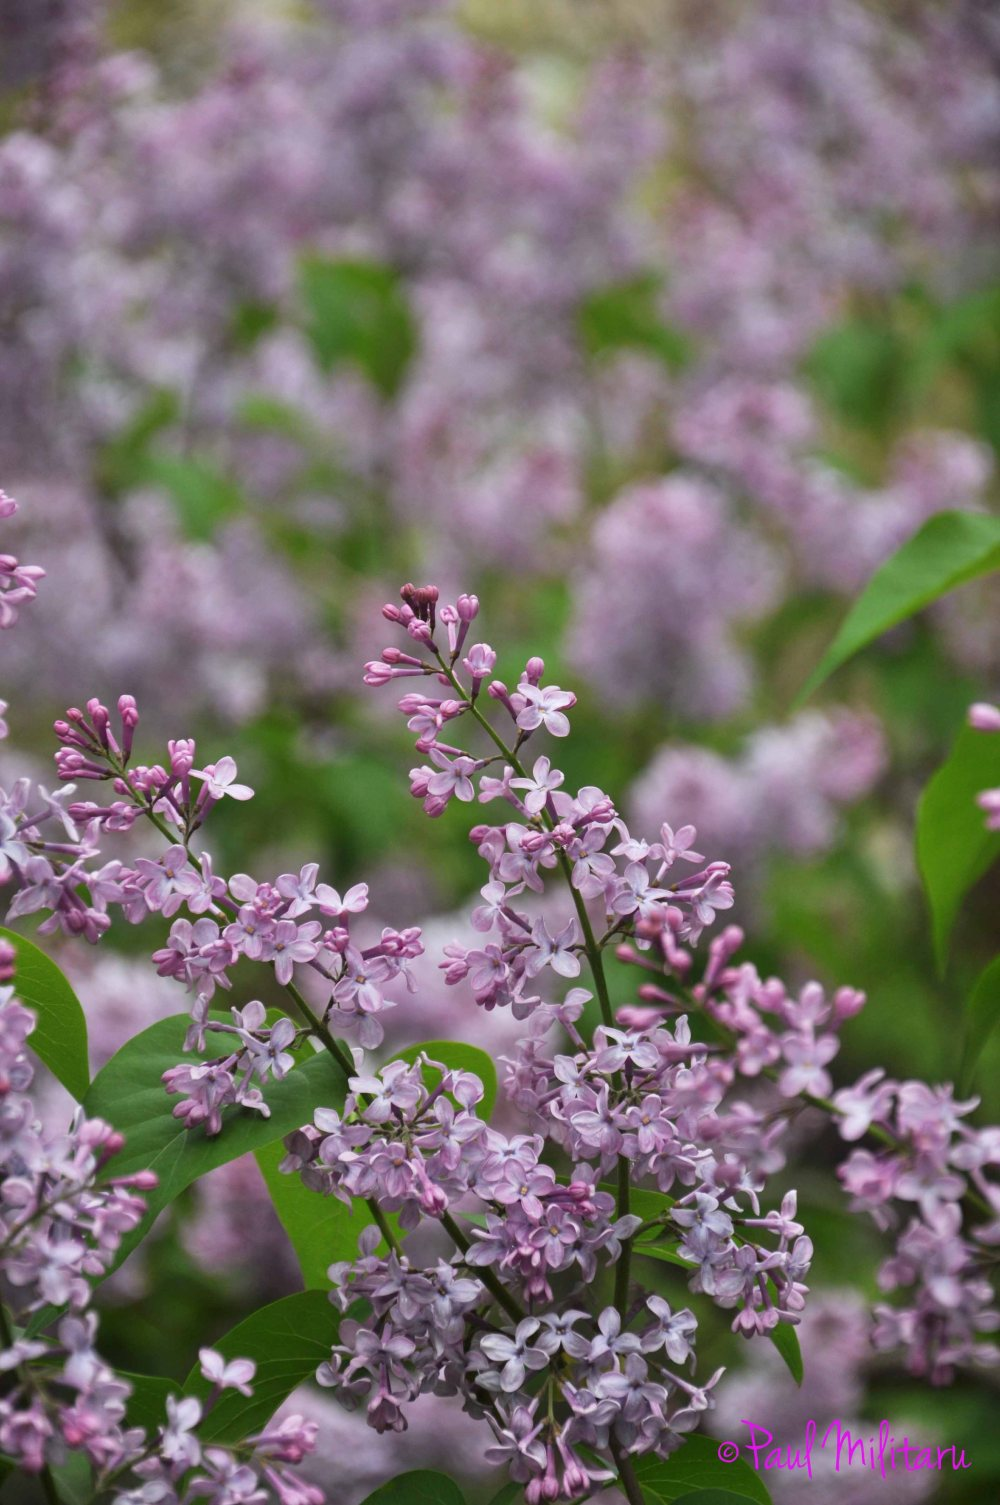 flowers scented of purple lilac